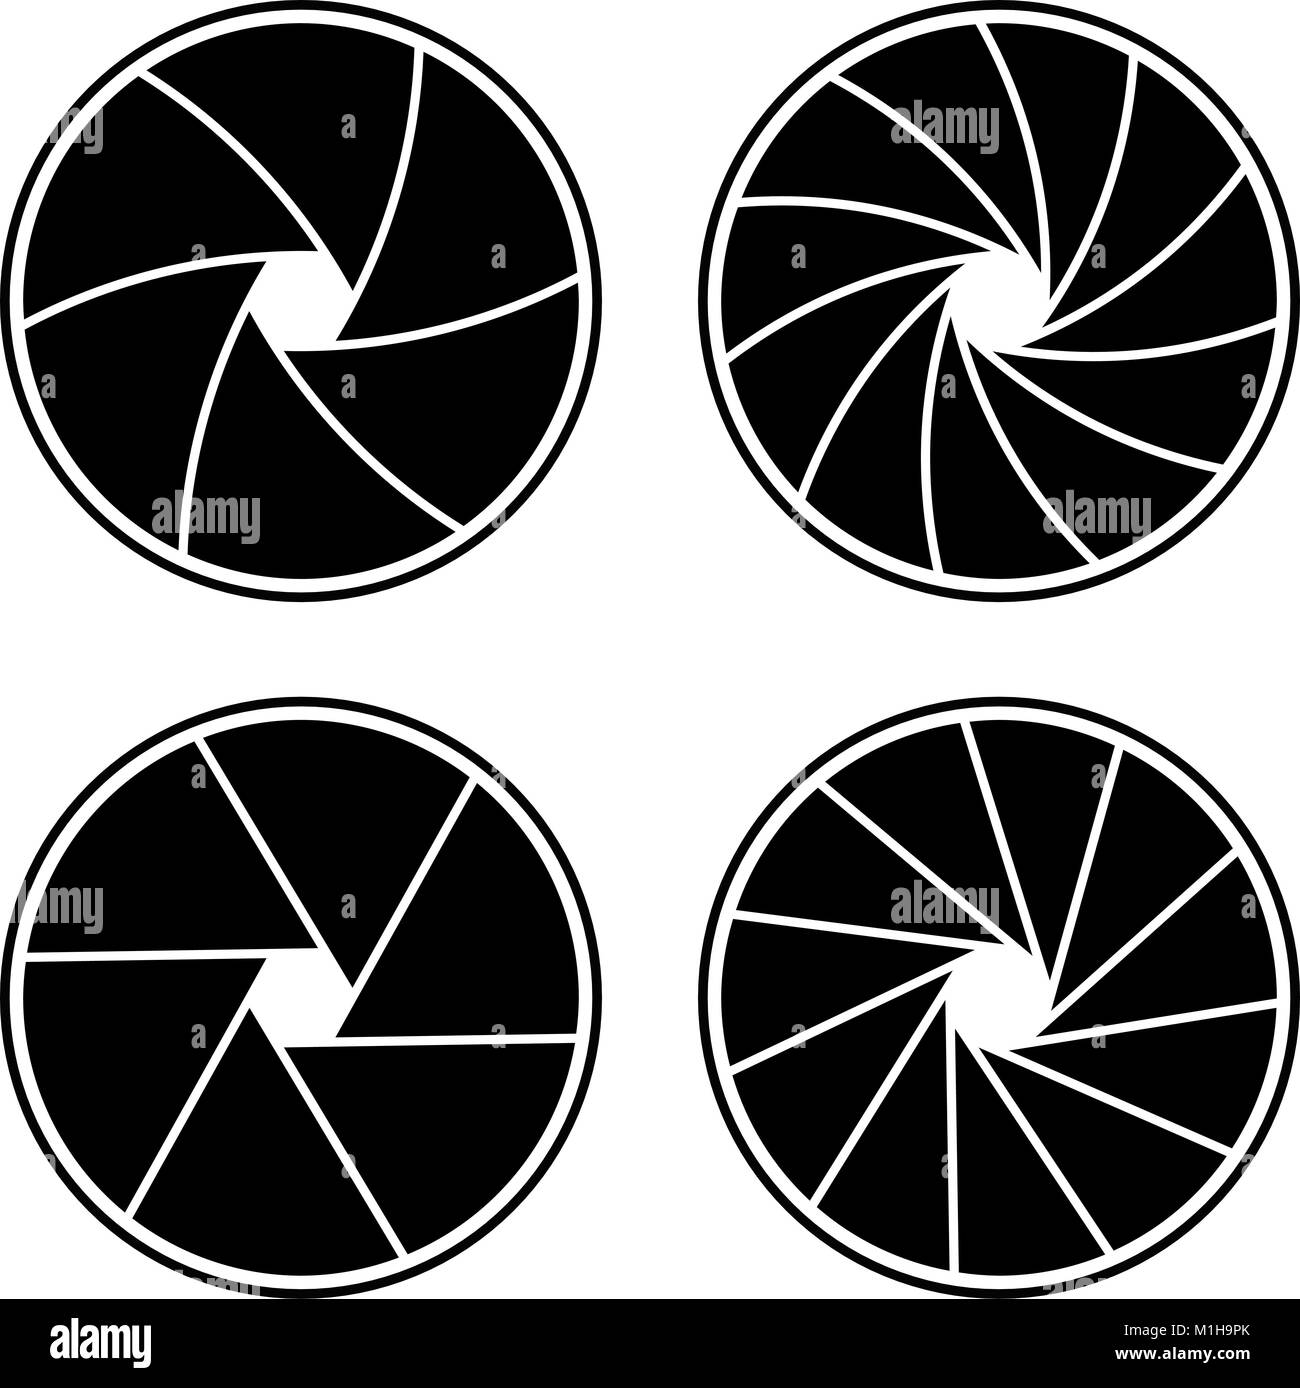 Closed Aperture With 611 Blades And Different Styles Stock Vector